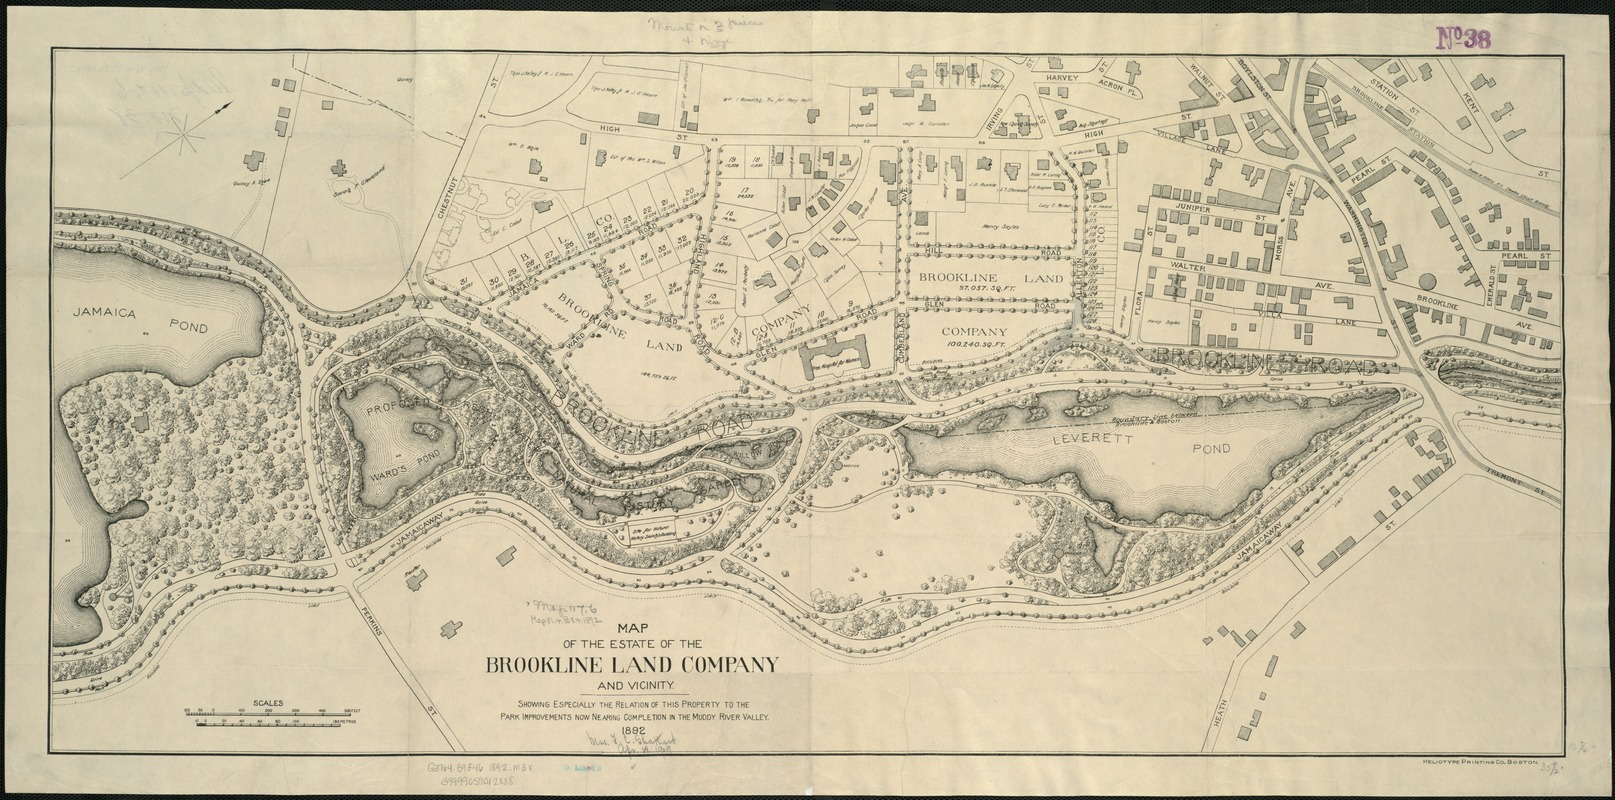 Map of the estate of the Brookline Land Company and vicinity